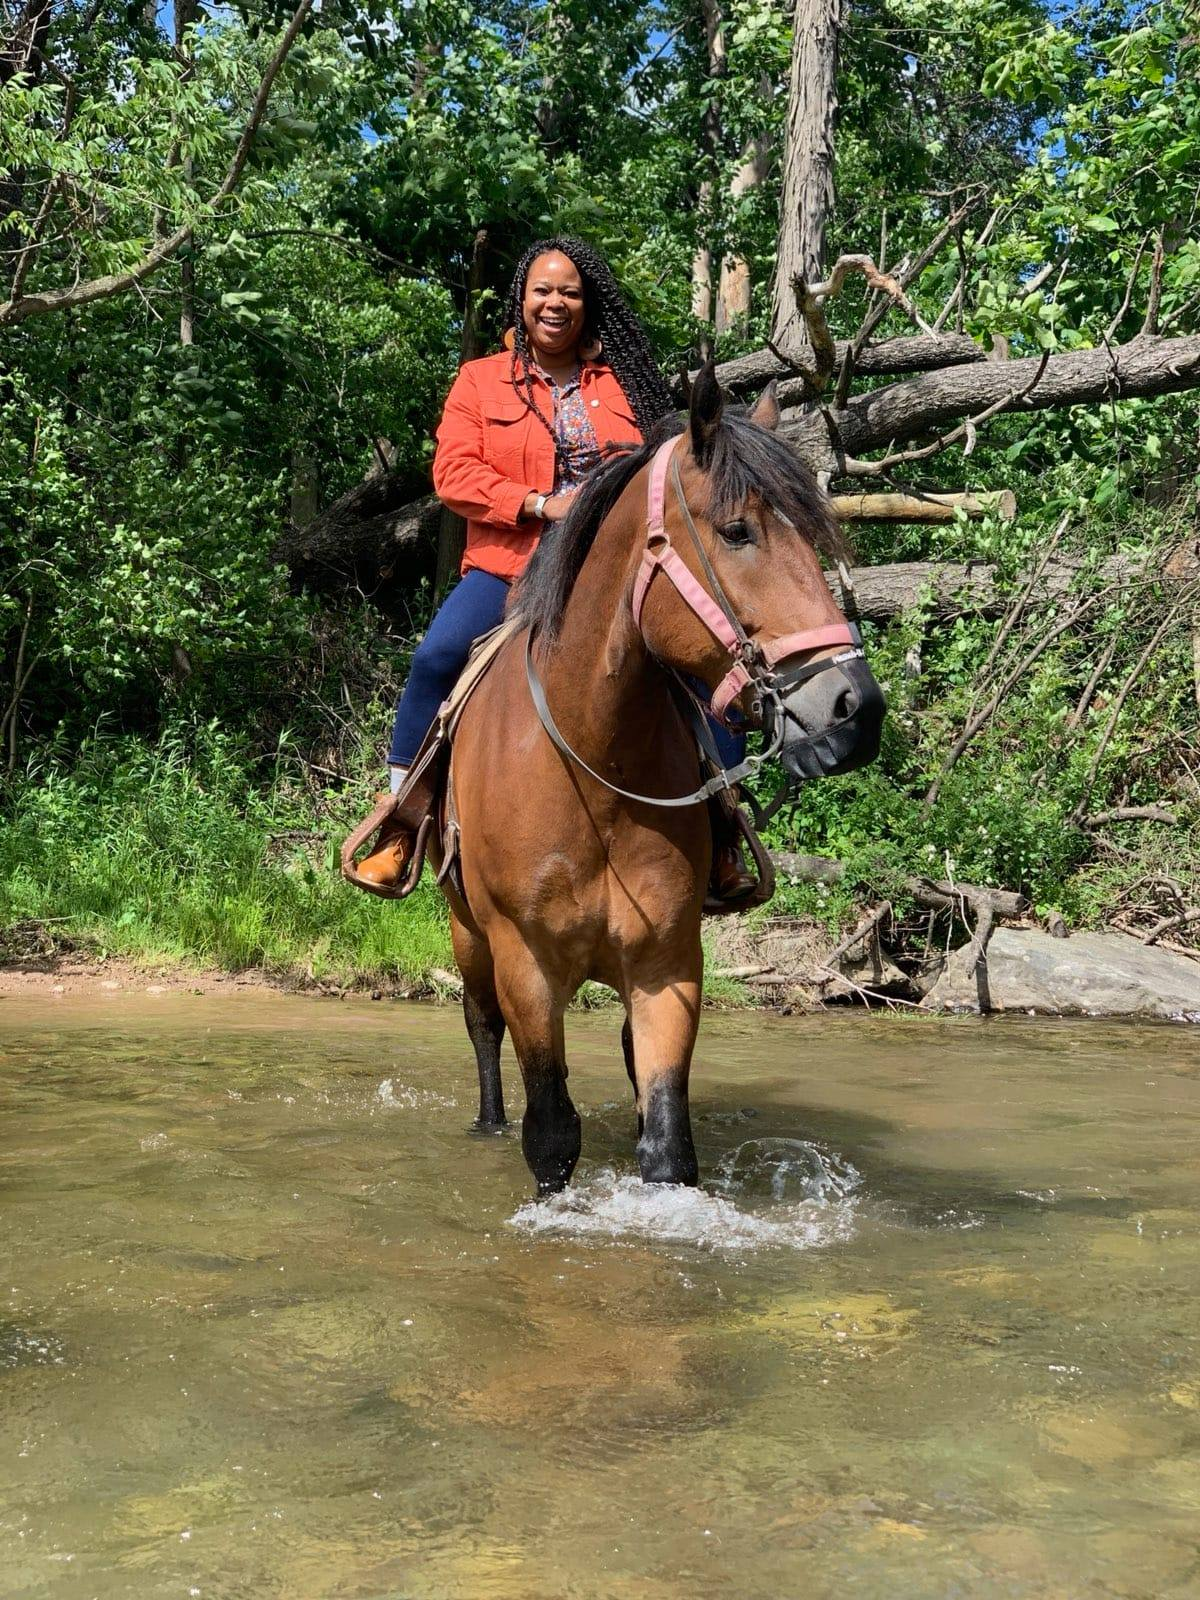 A horse and rider in the creek